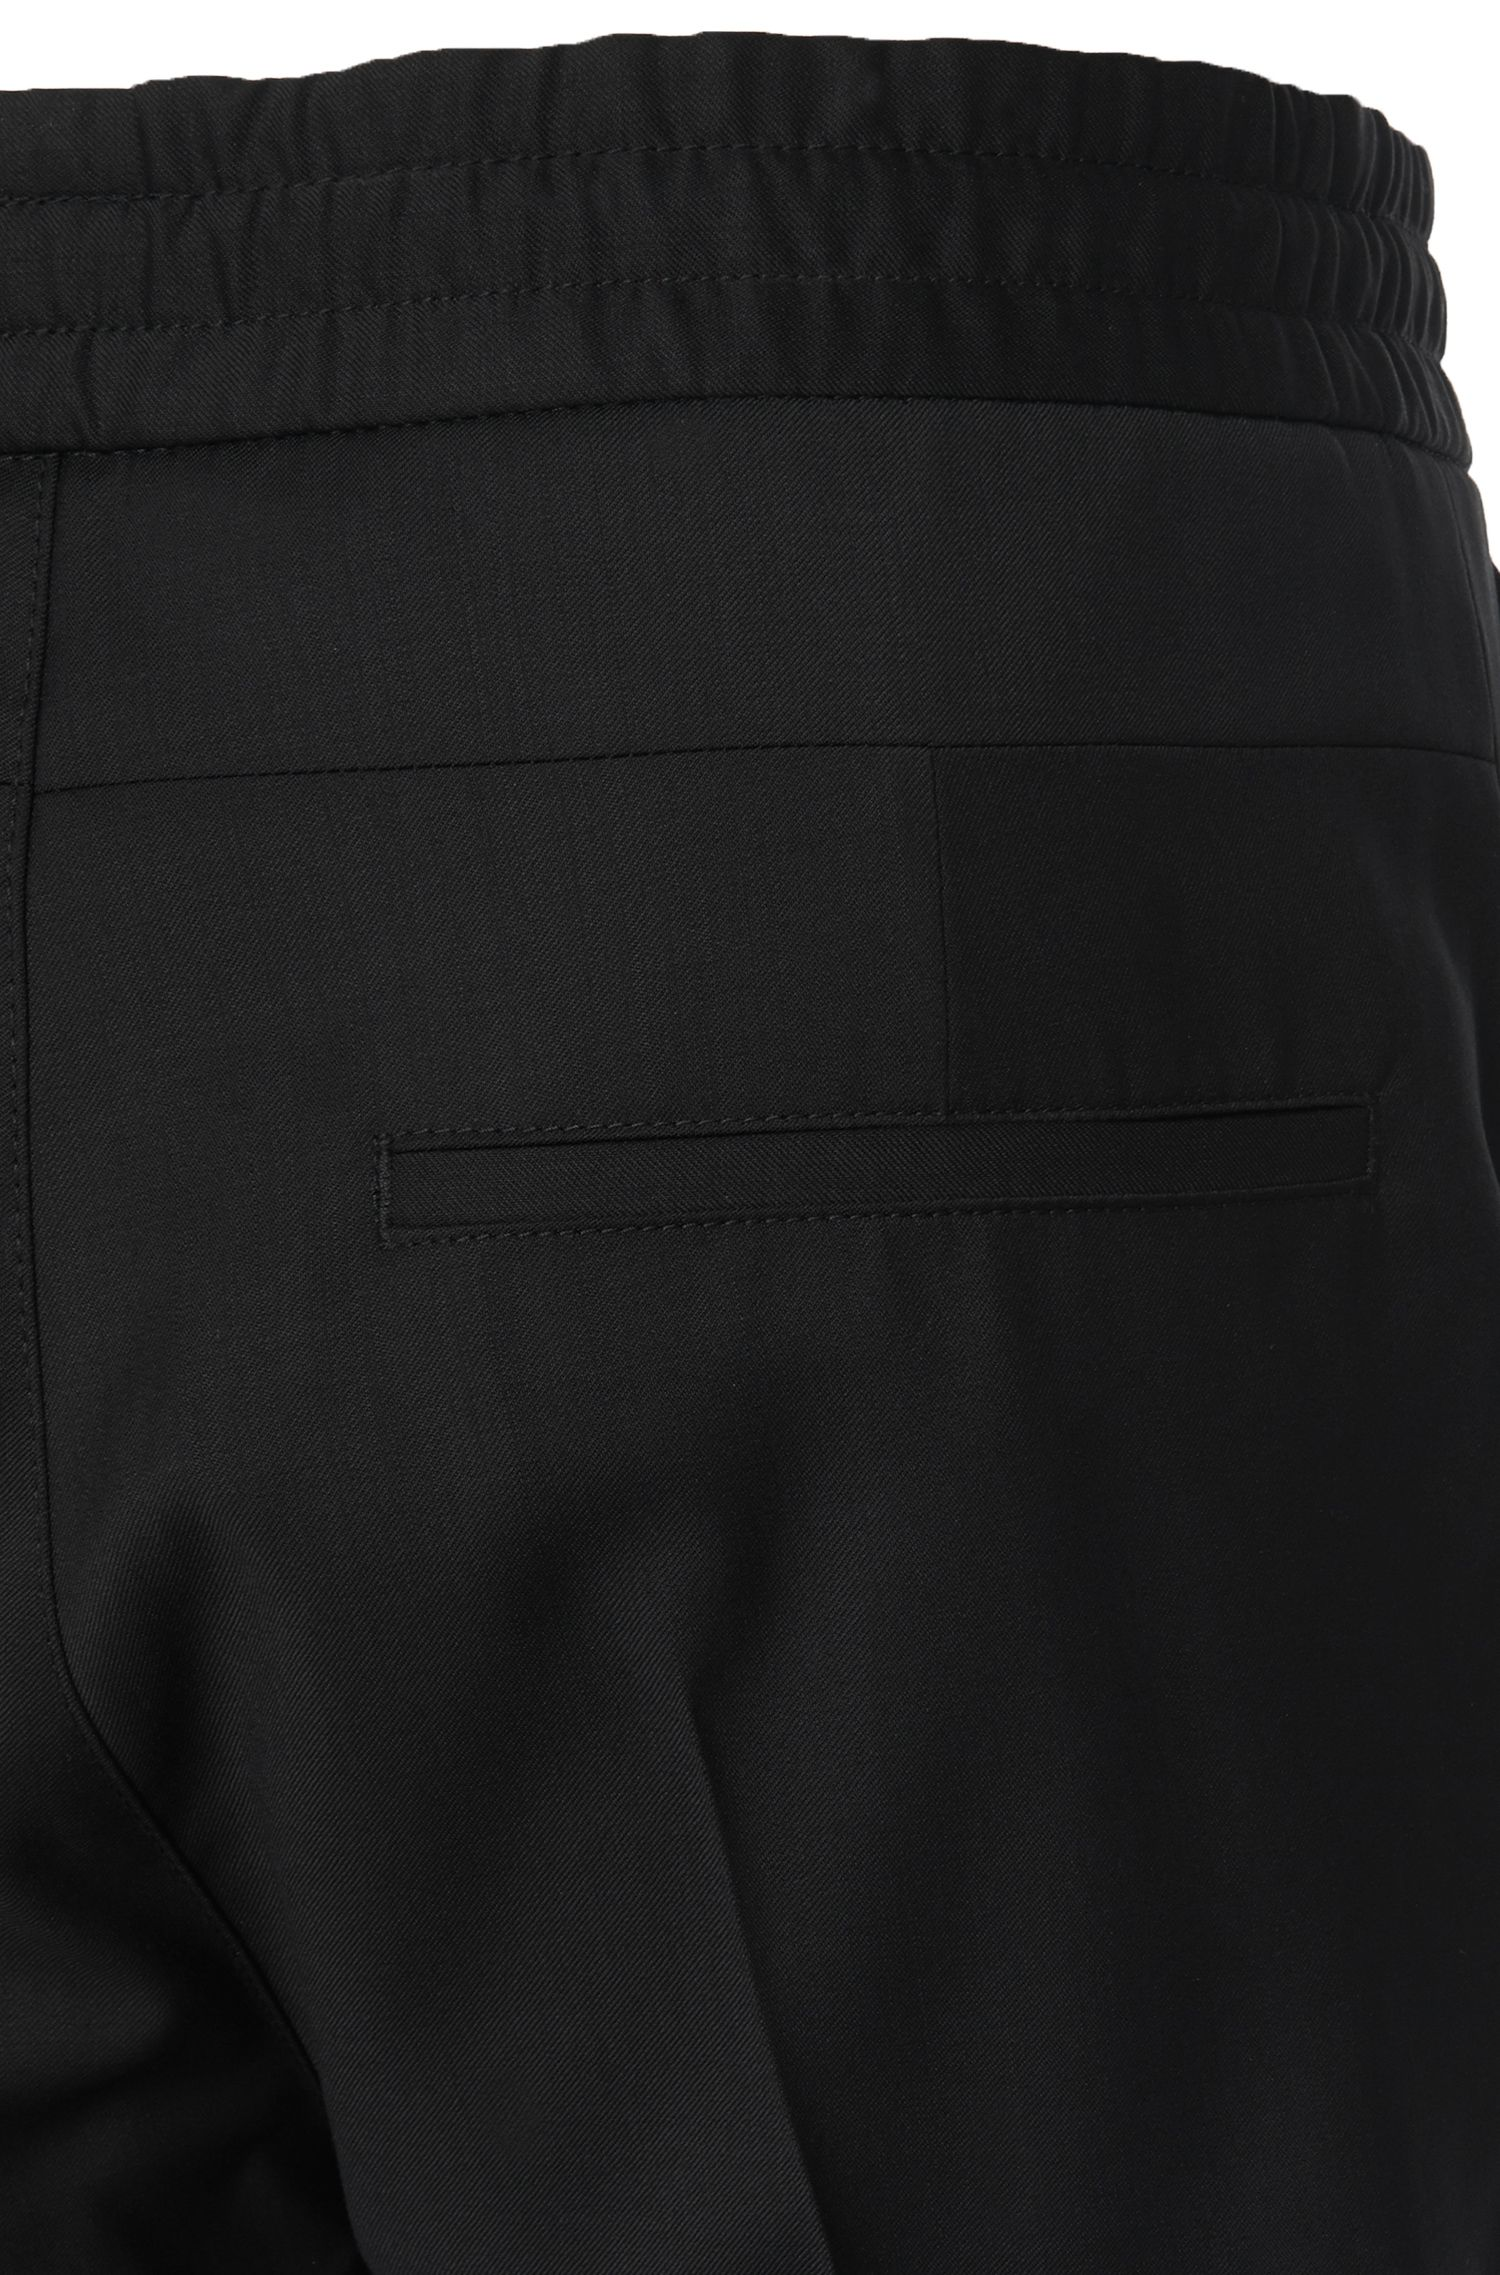 Chino Tapered Fit en laine vierge : « Himesh2 »